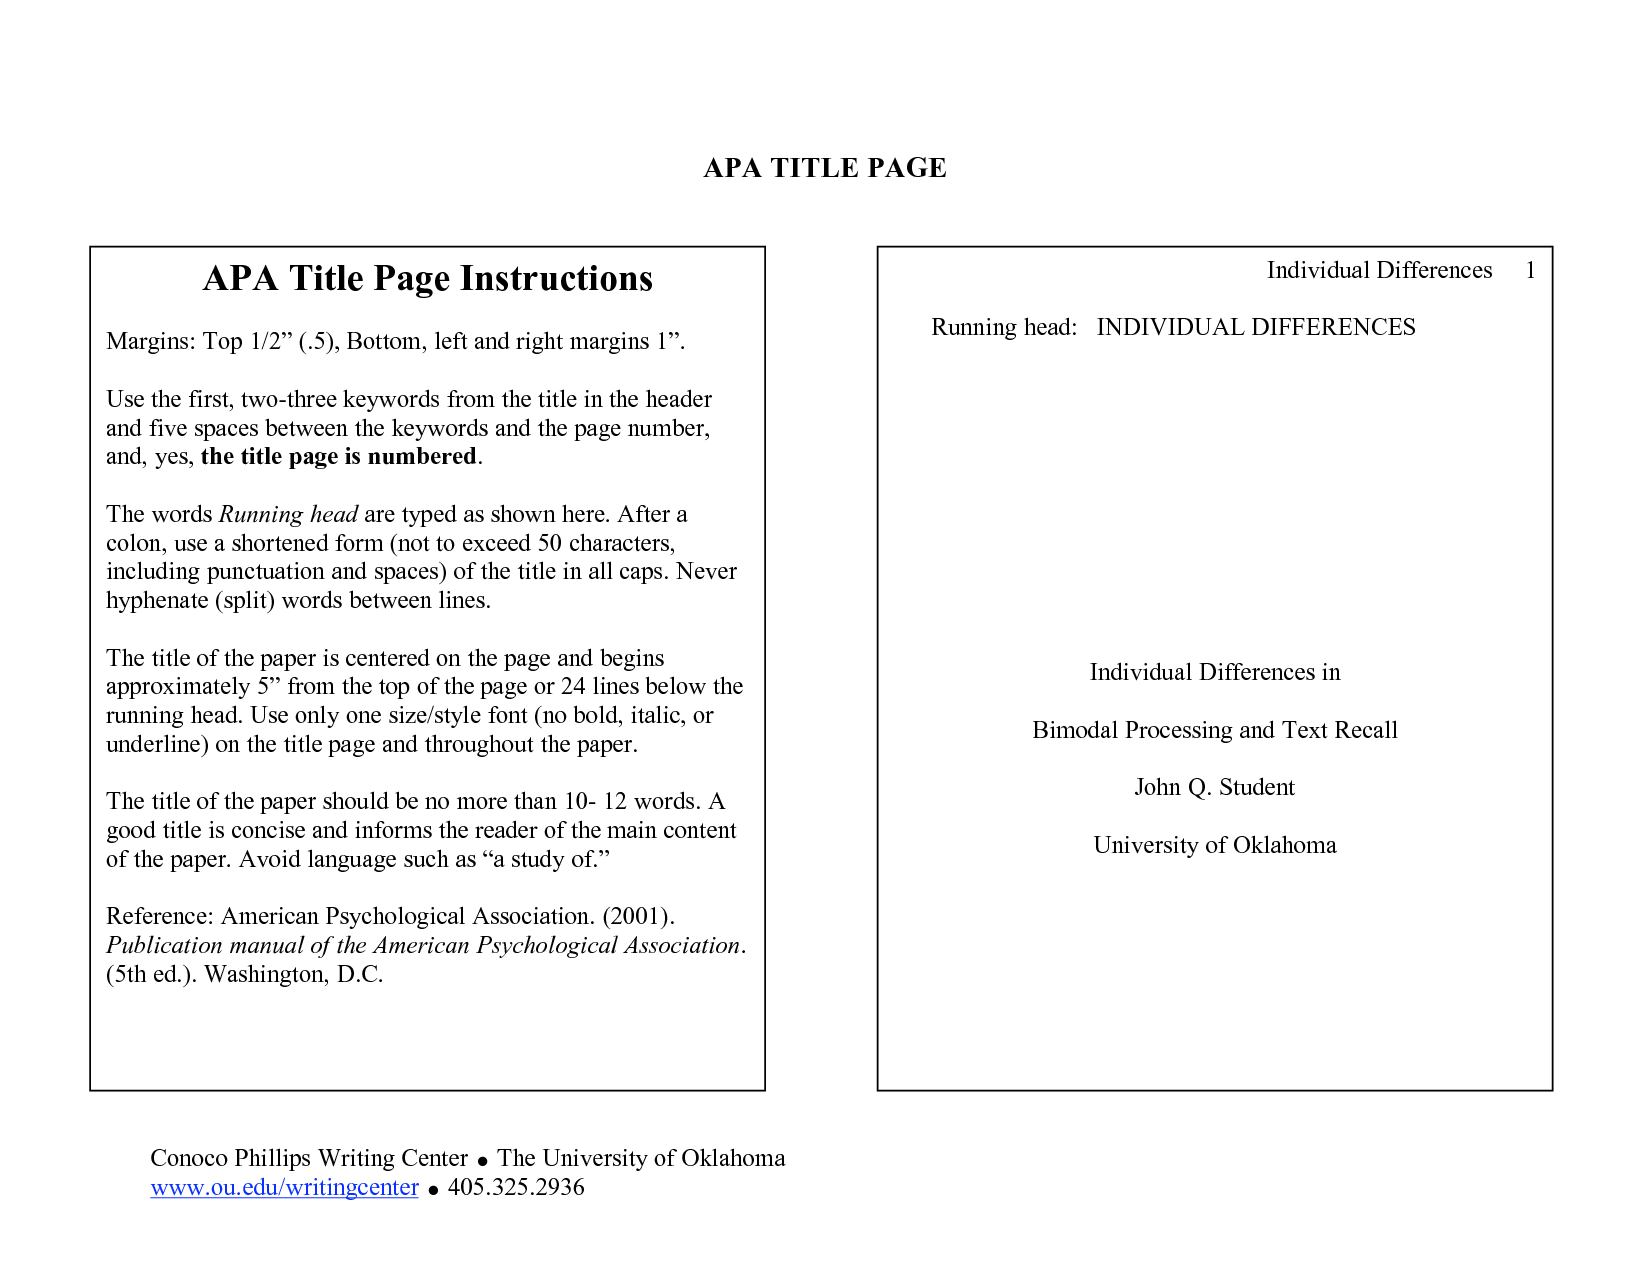 004 Research Paper Example Cover Page For Apa Unique Style Sample Title Format Full